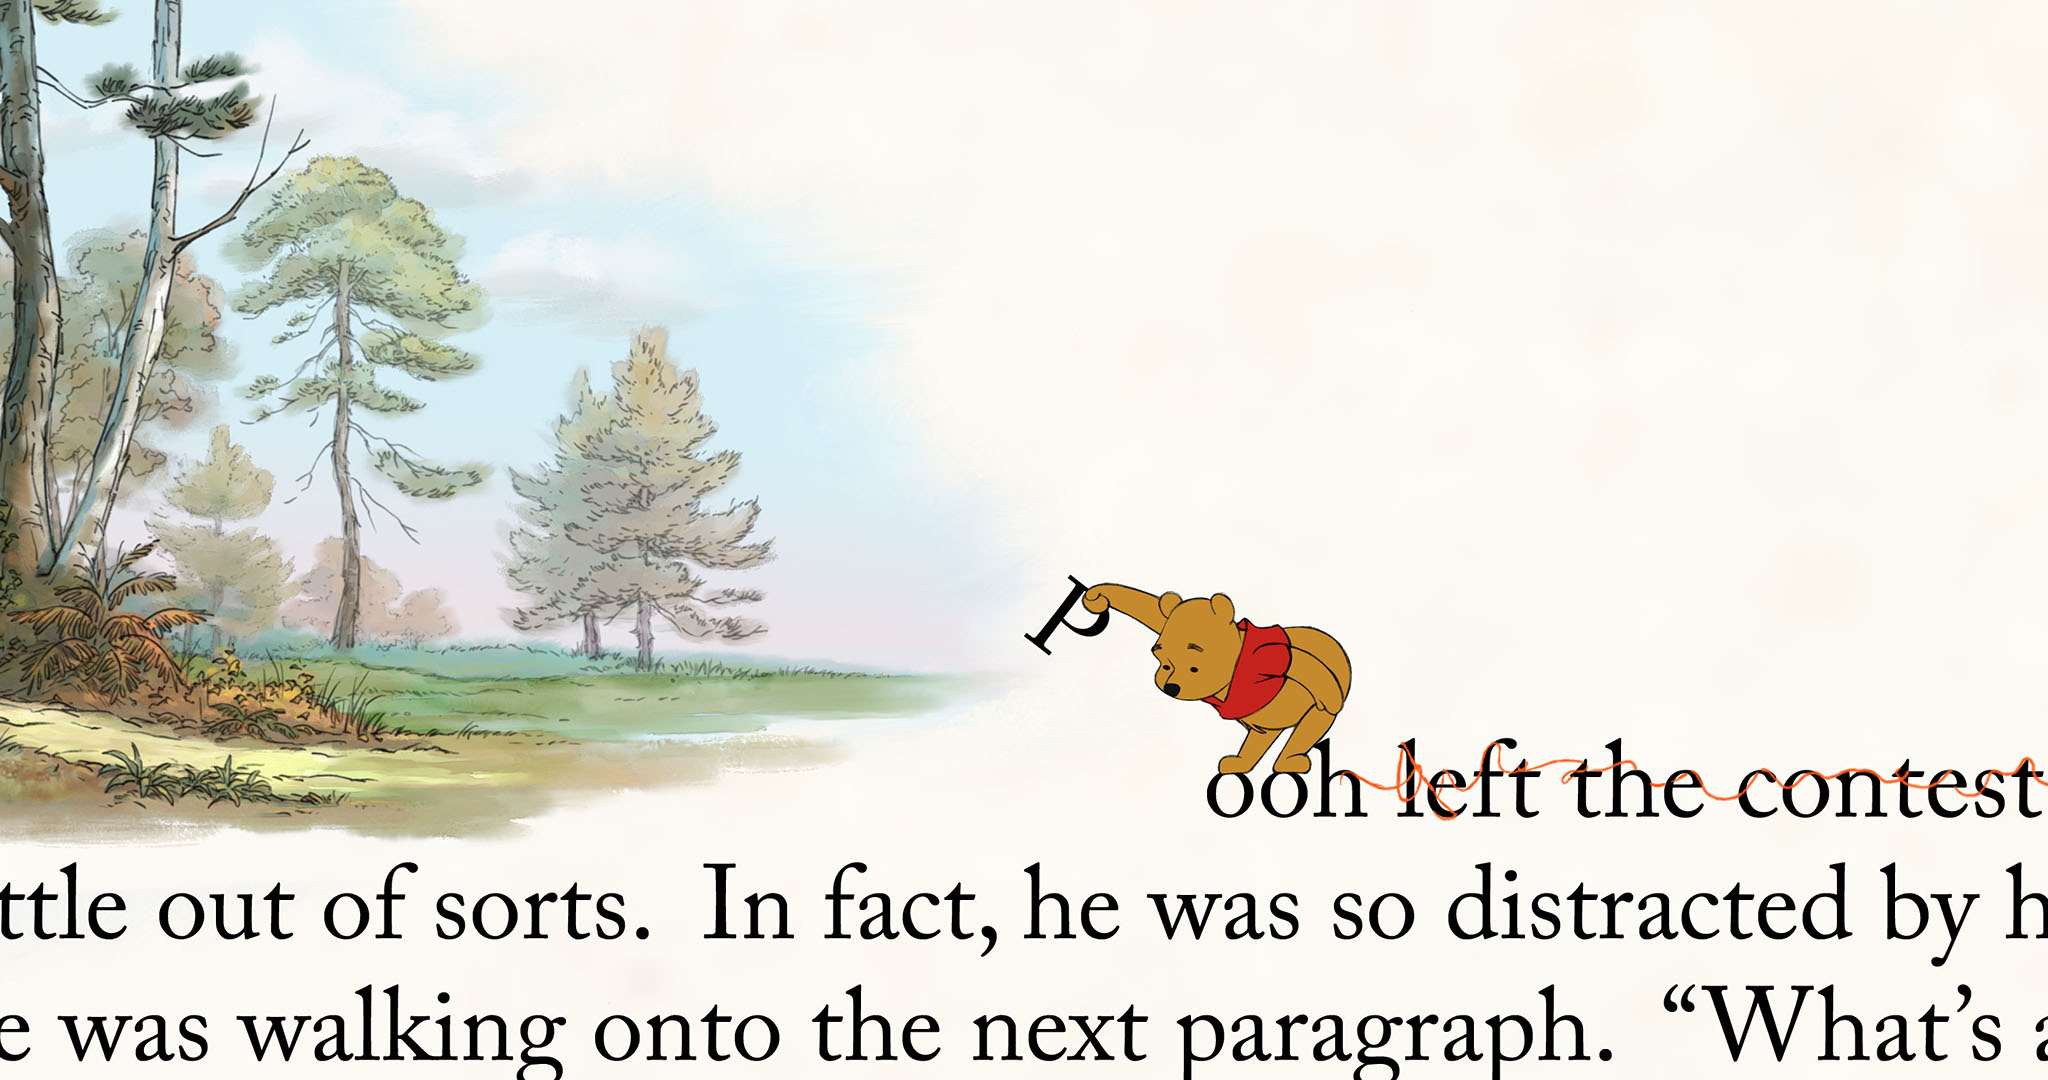 The appealing fourth-wall breaking visuals in Winnie the Pooh (2011)